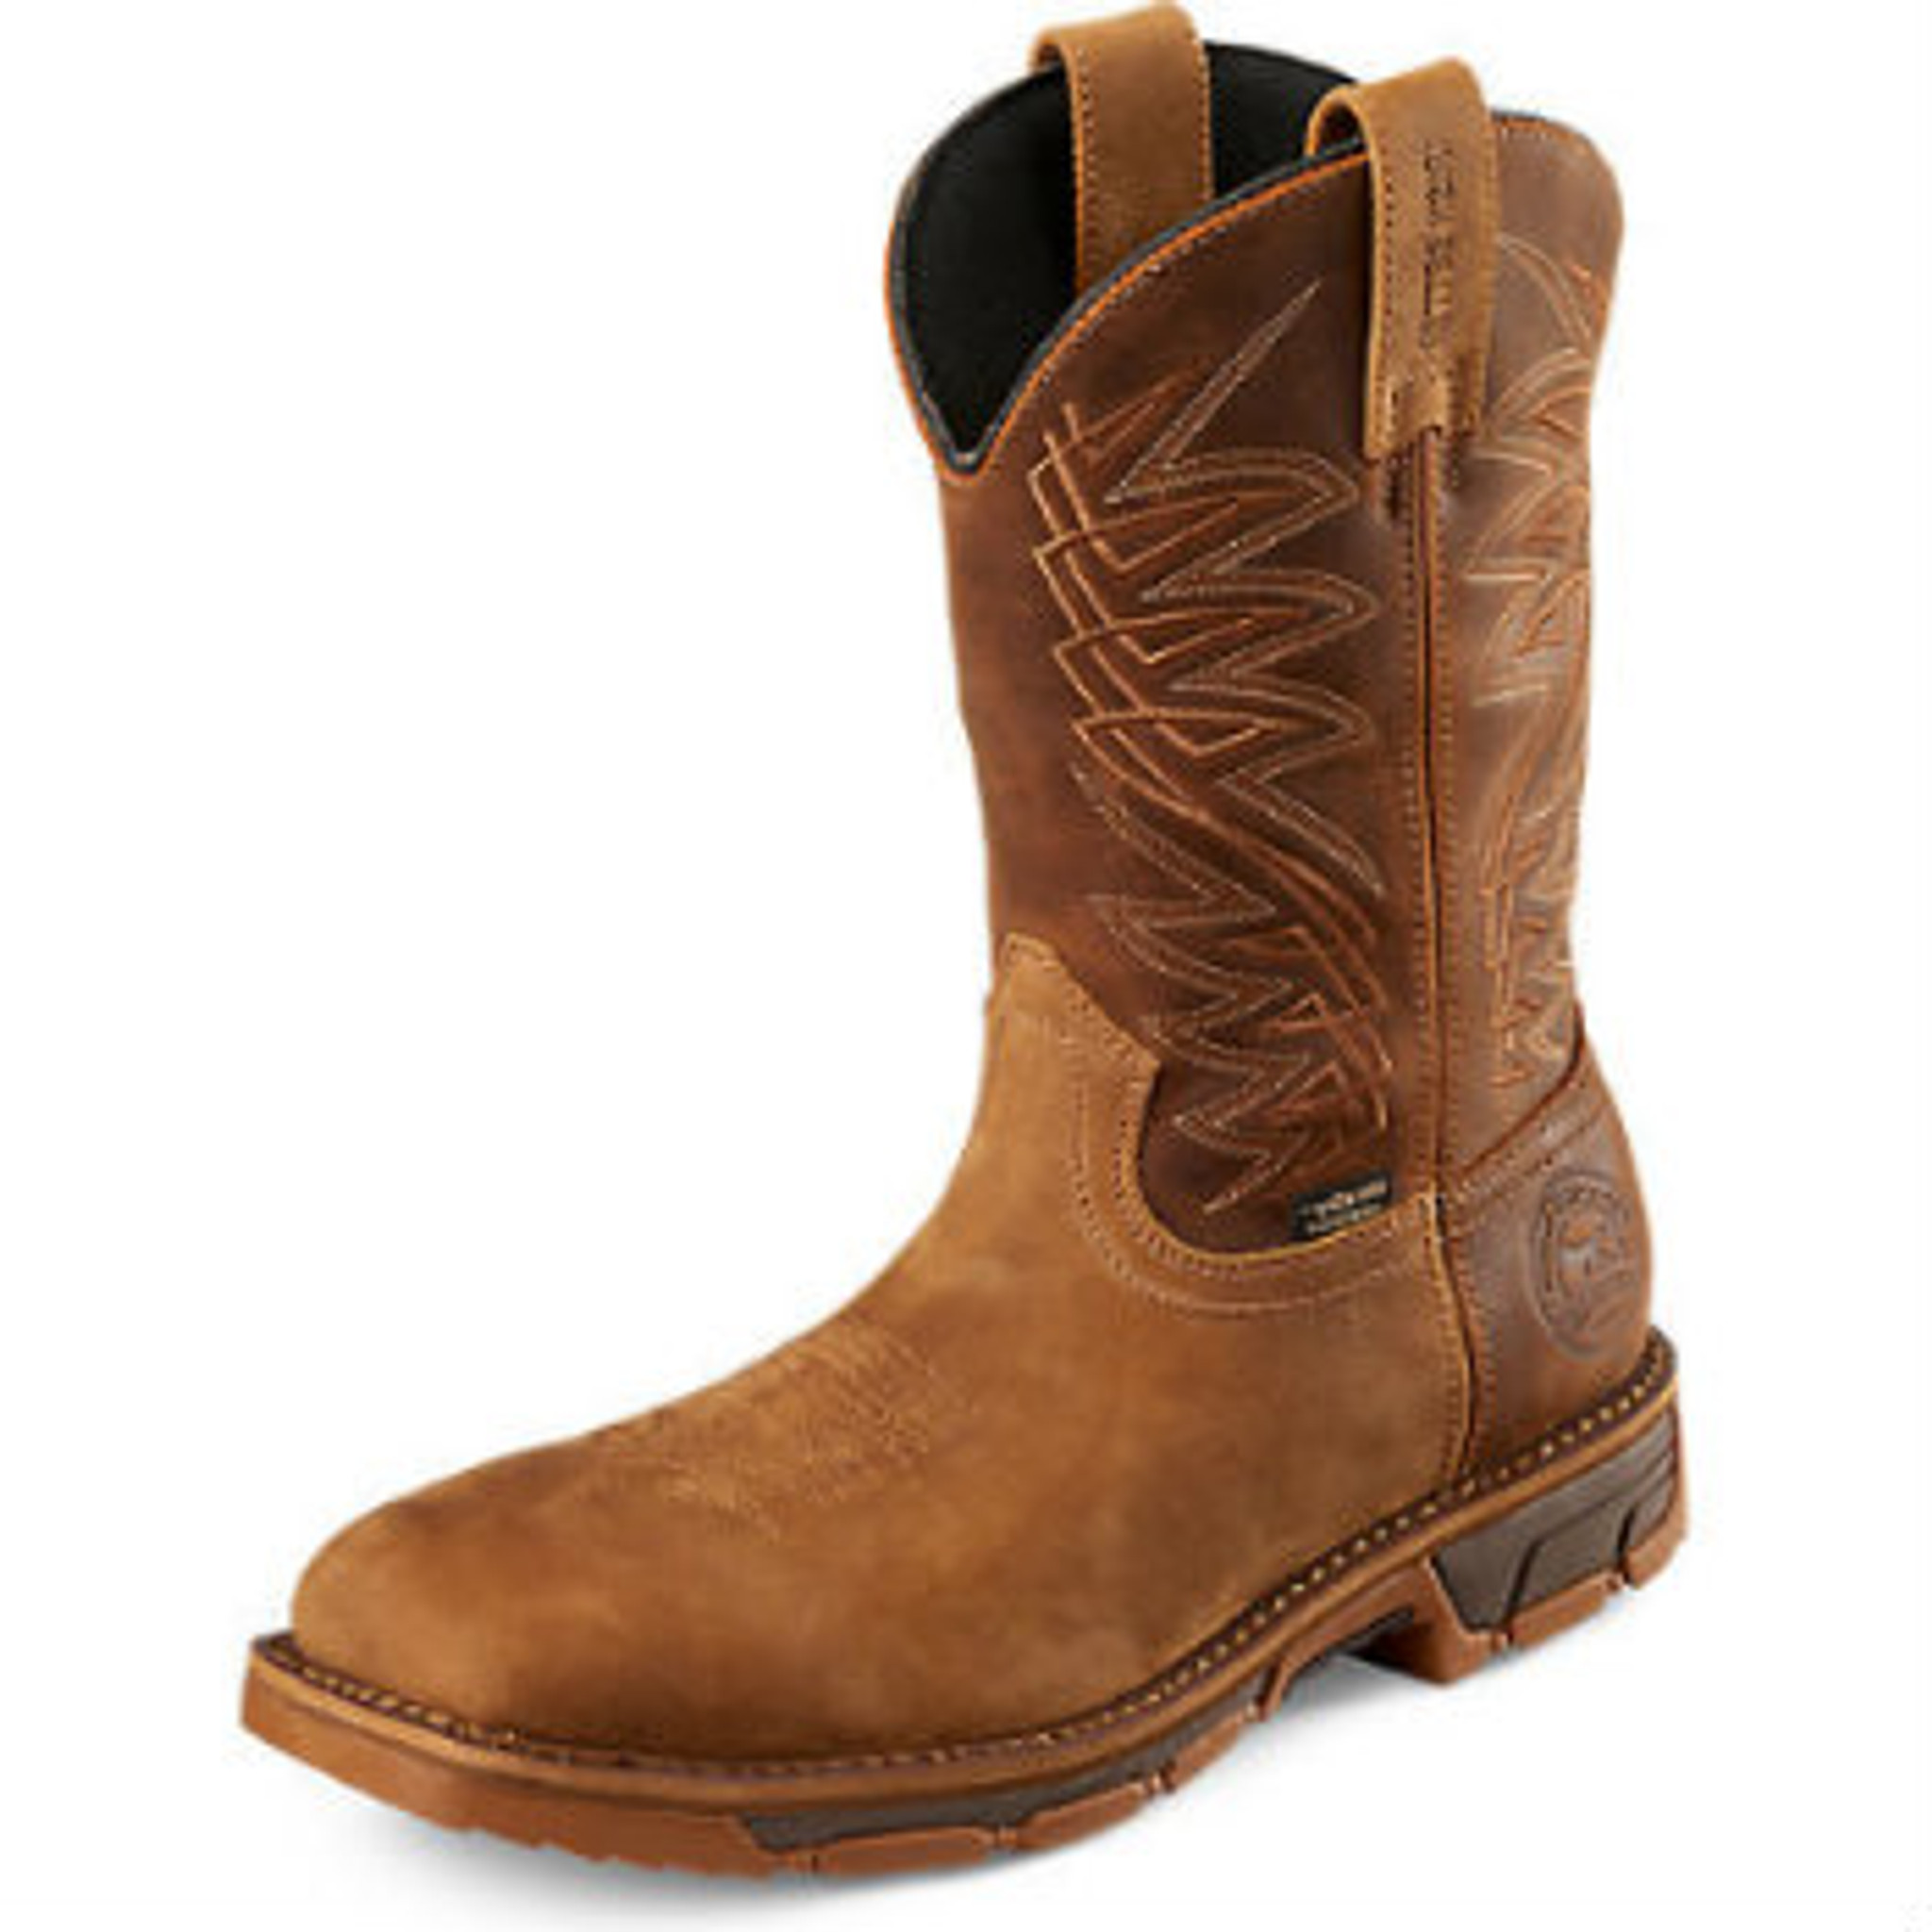 8c1085696fa Men's Red Wing Boot, Irish Setter, Square, Steel Toe